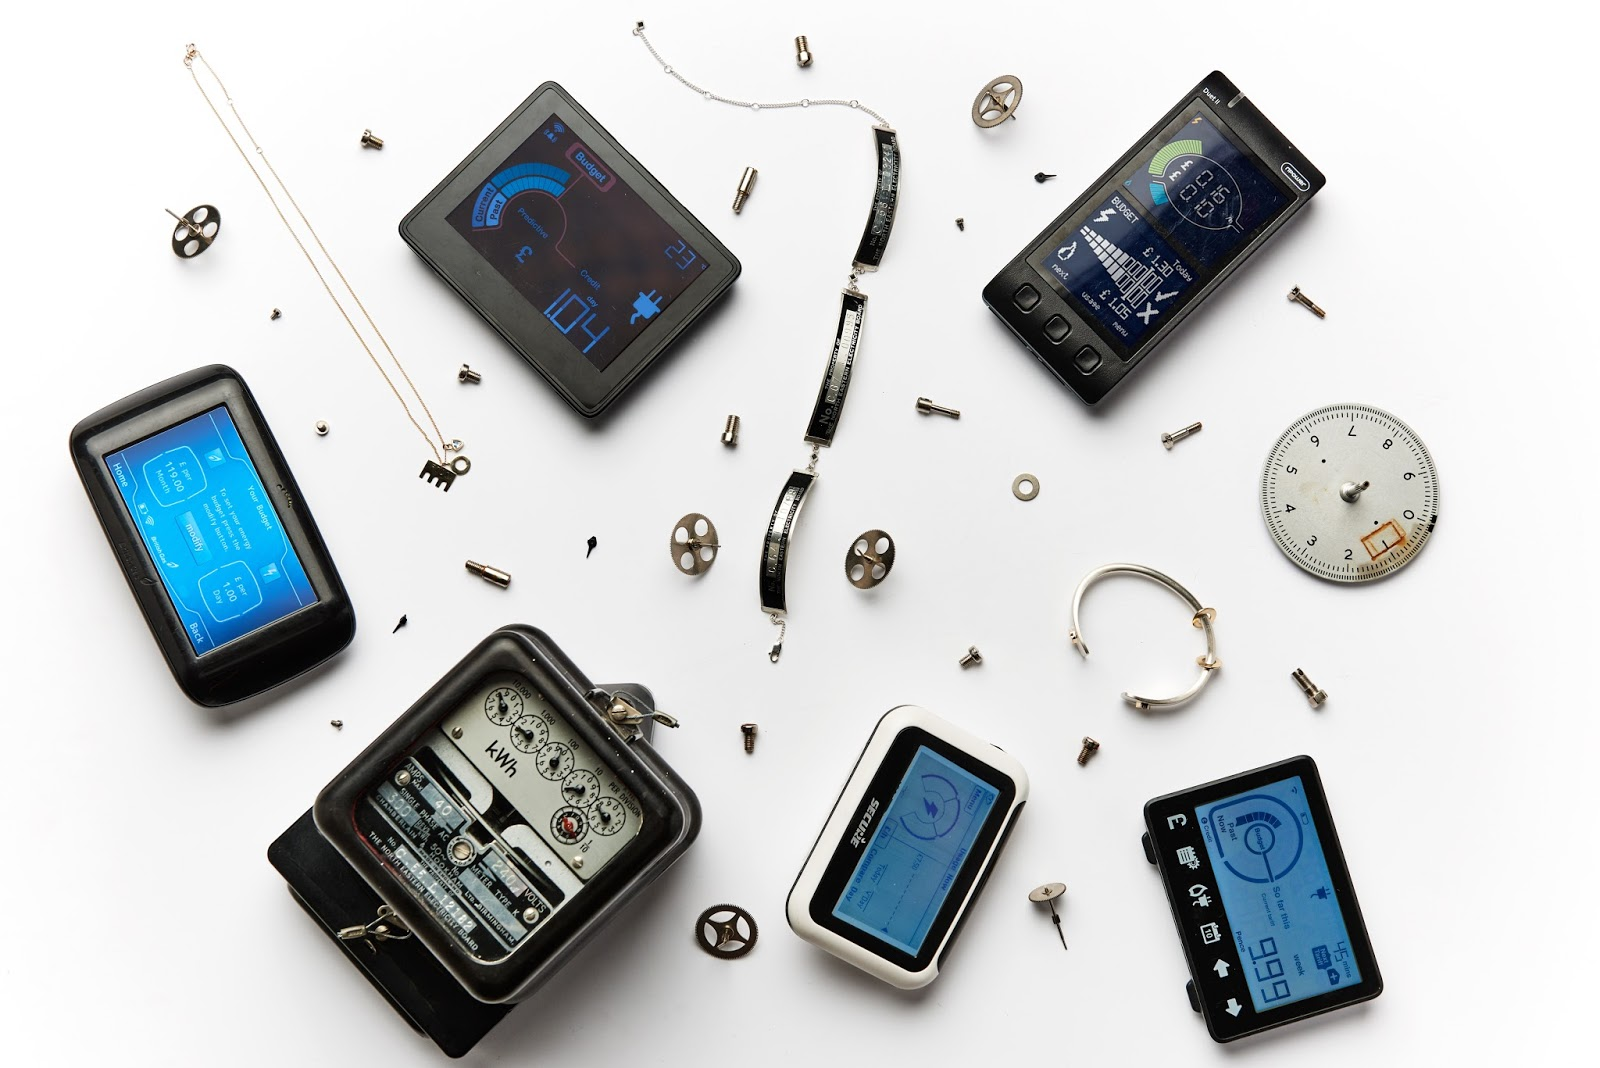 Smart Meter Jewellery designed by Kat Clark, Taislany and Aftab